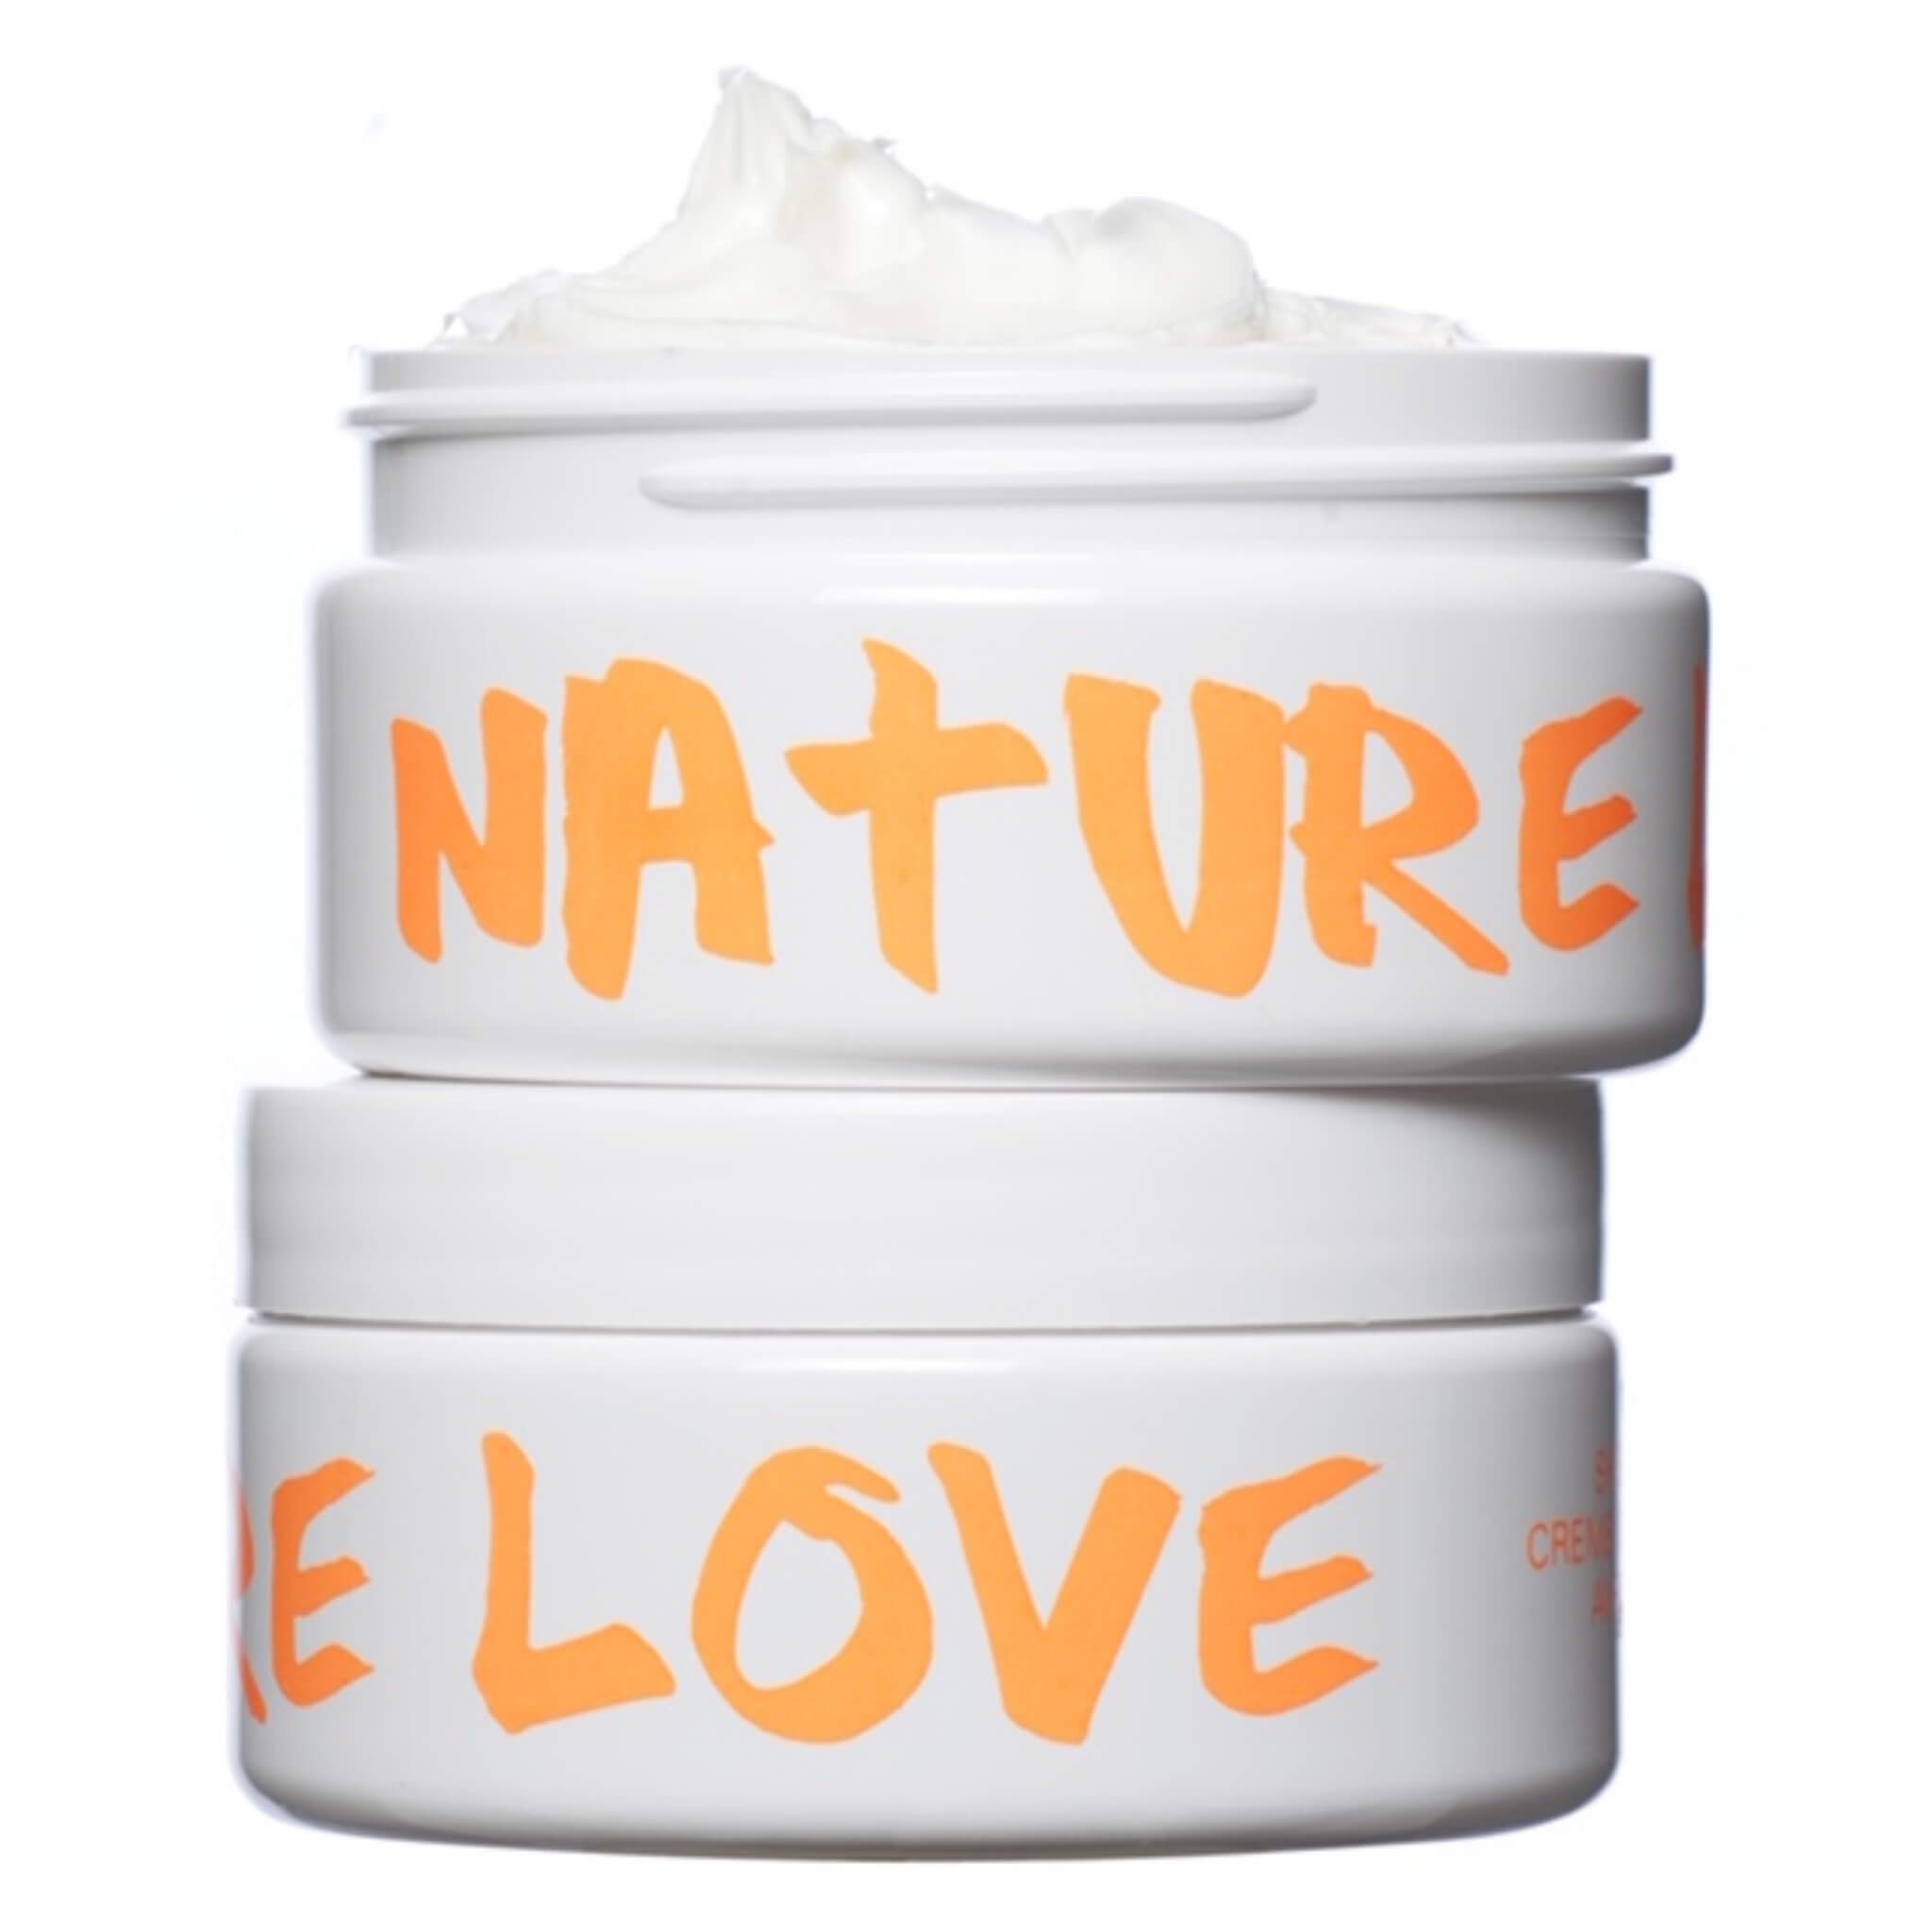 Nature Girl - Nature Love - Lemon Petitgrain